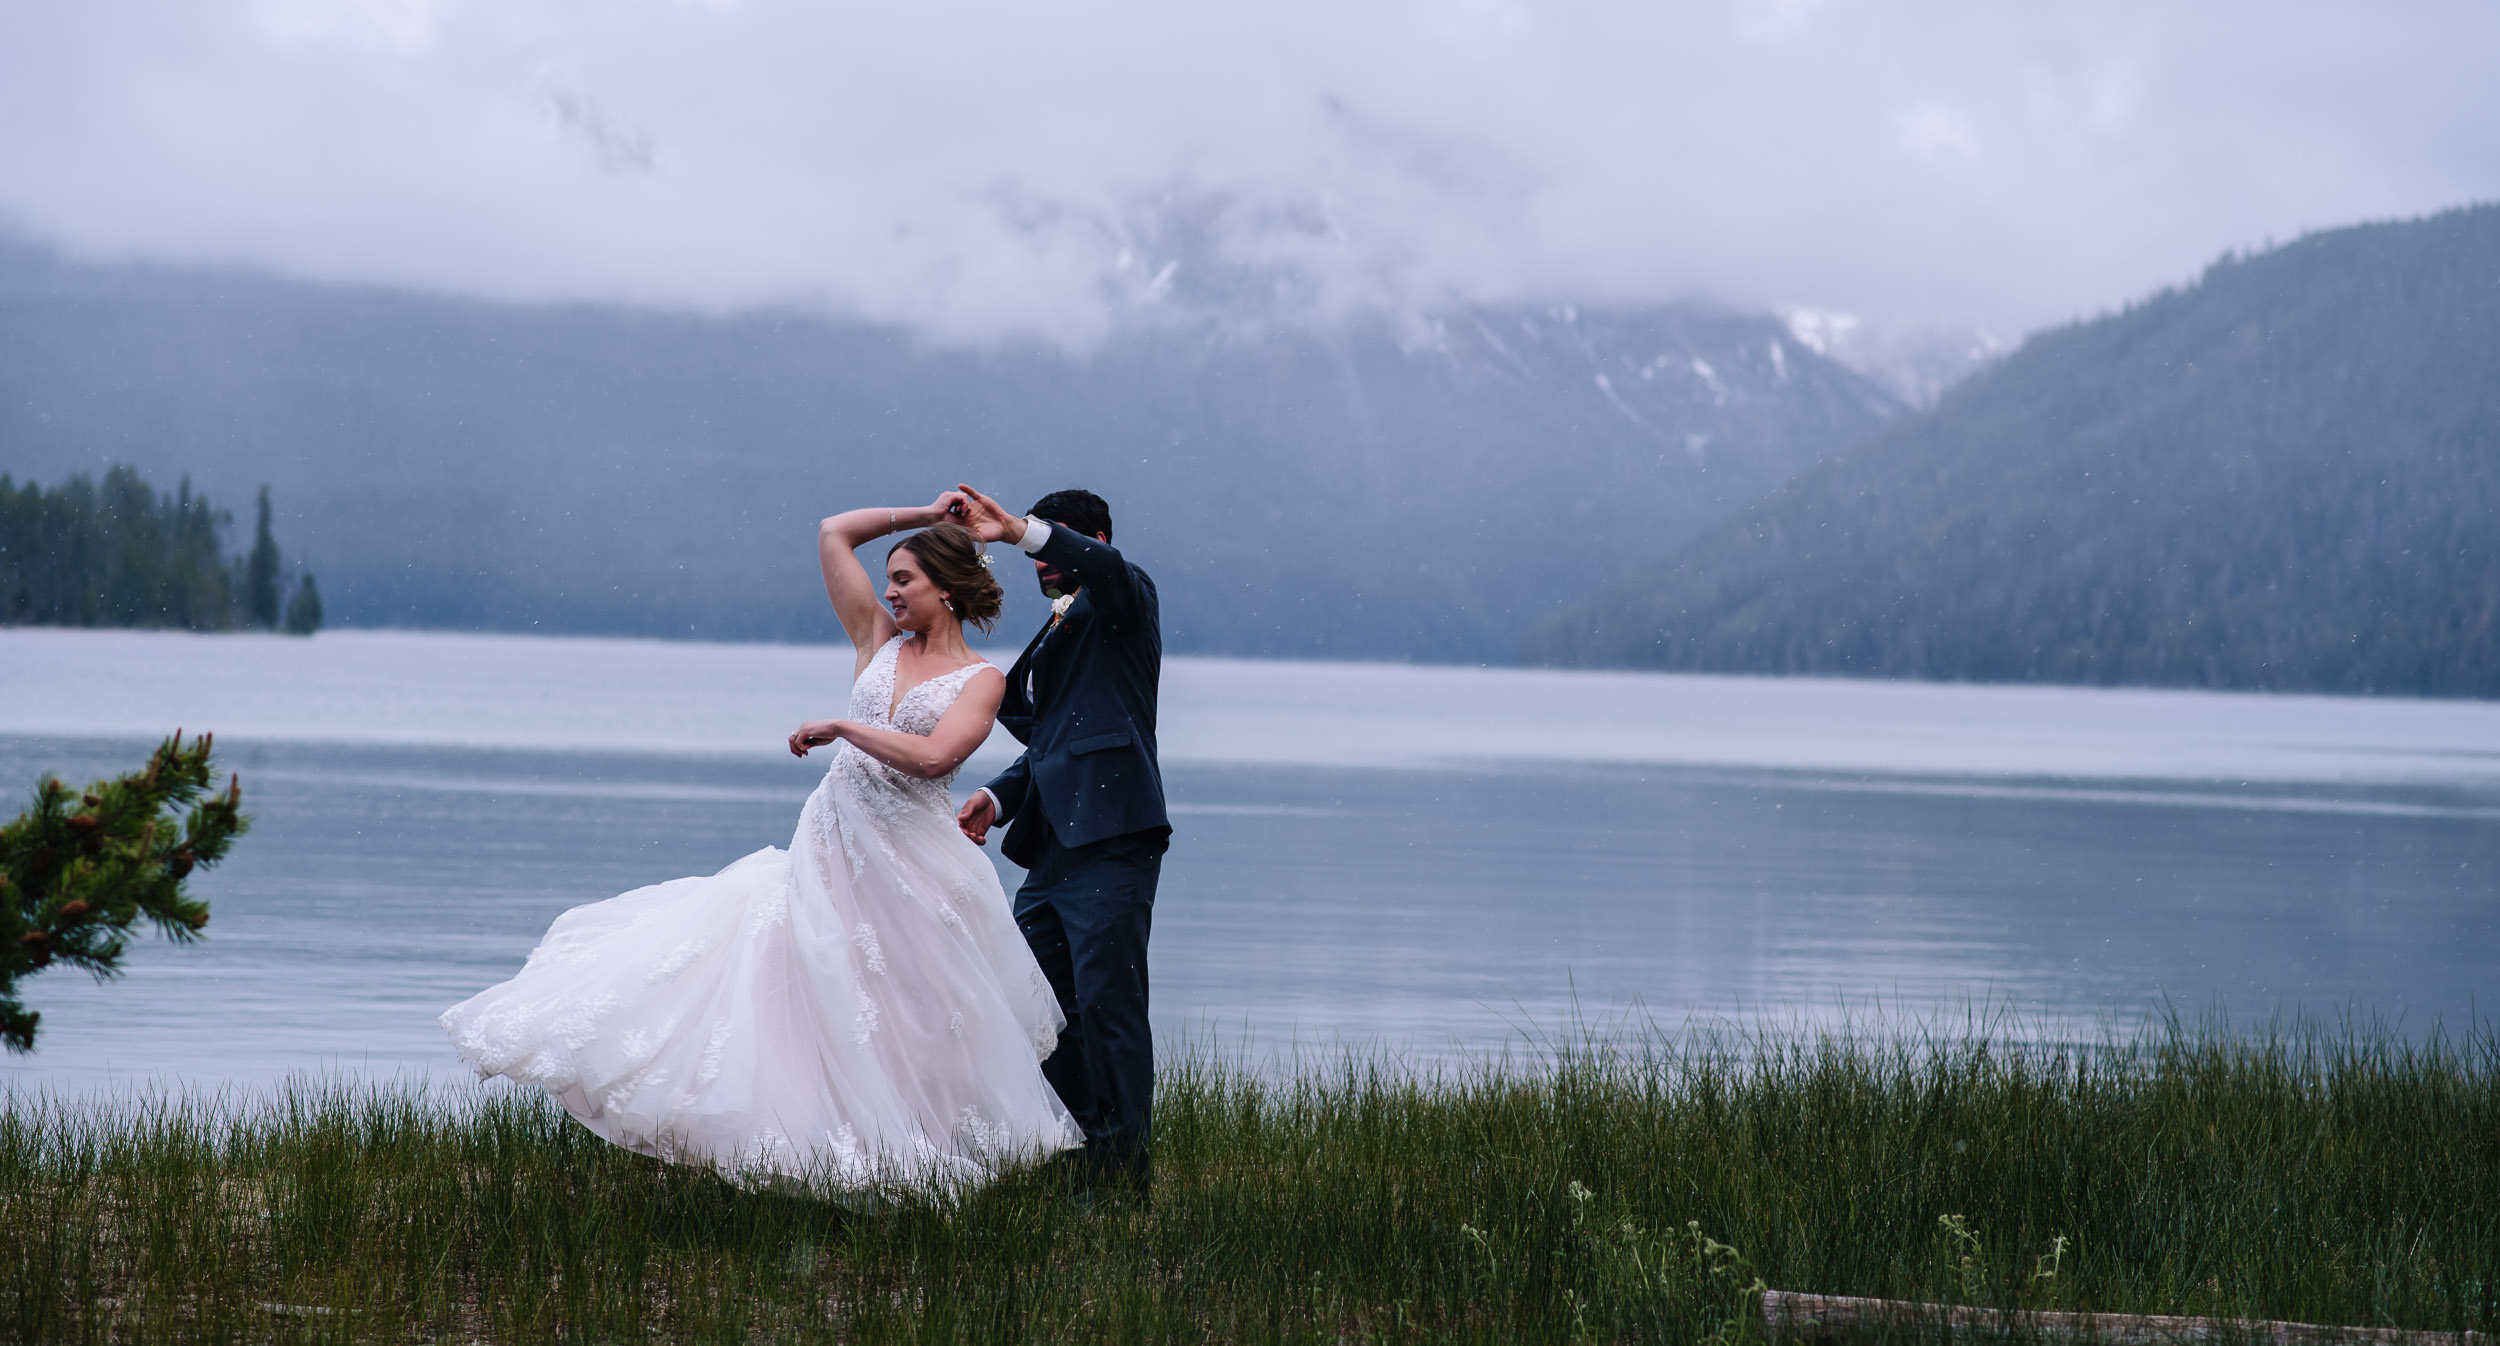 What is an Adventure Elopement? - A wedding celebration in the great outdoors that is 100% focused on you.